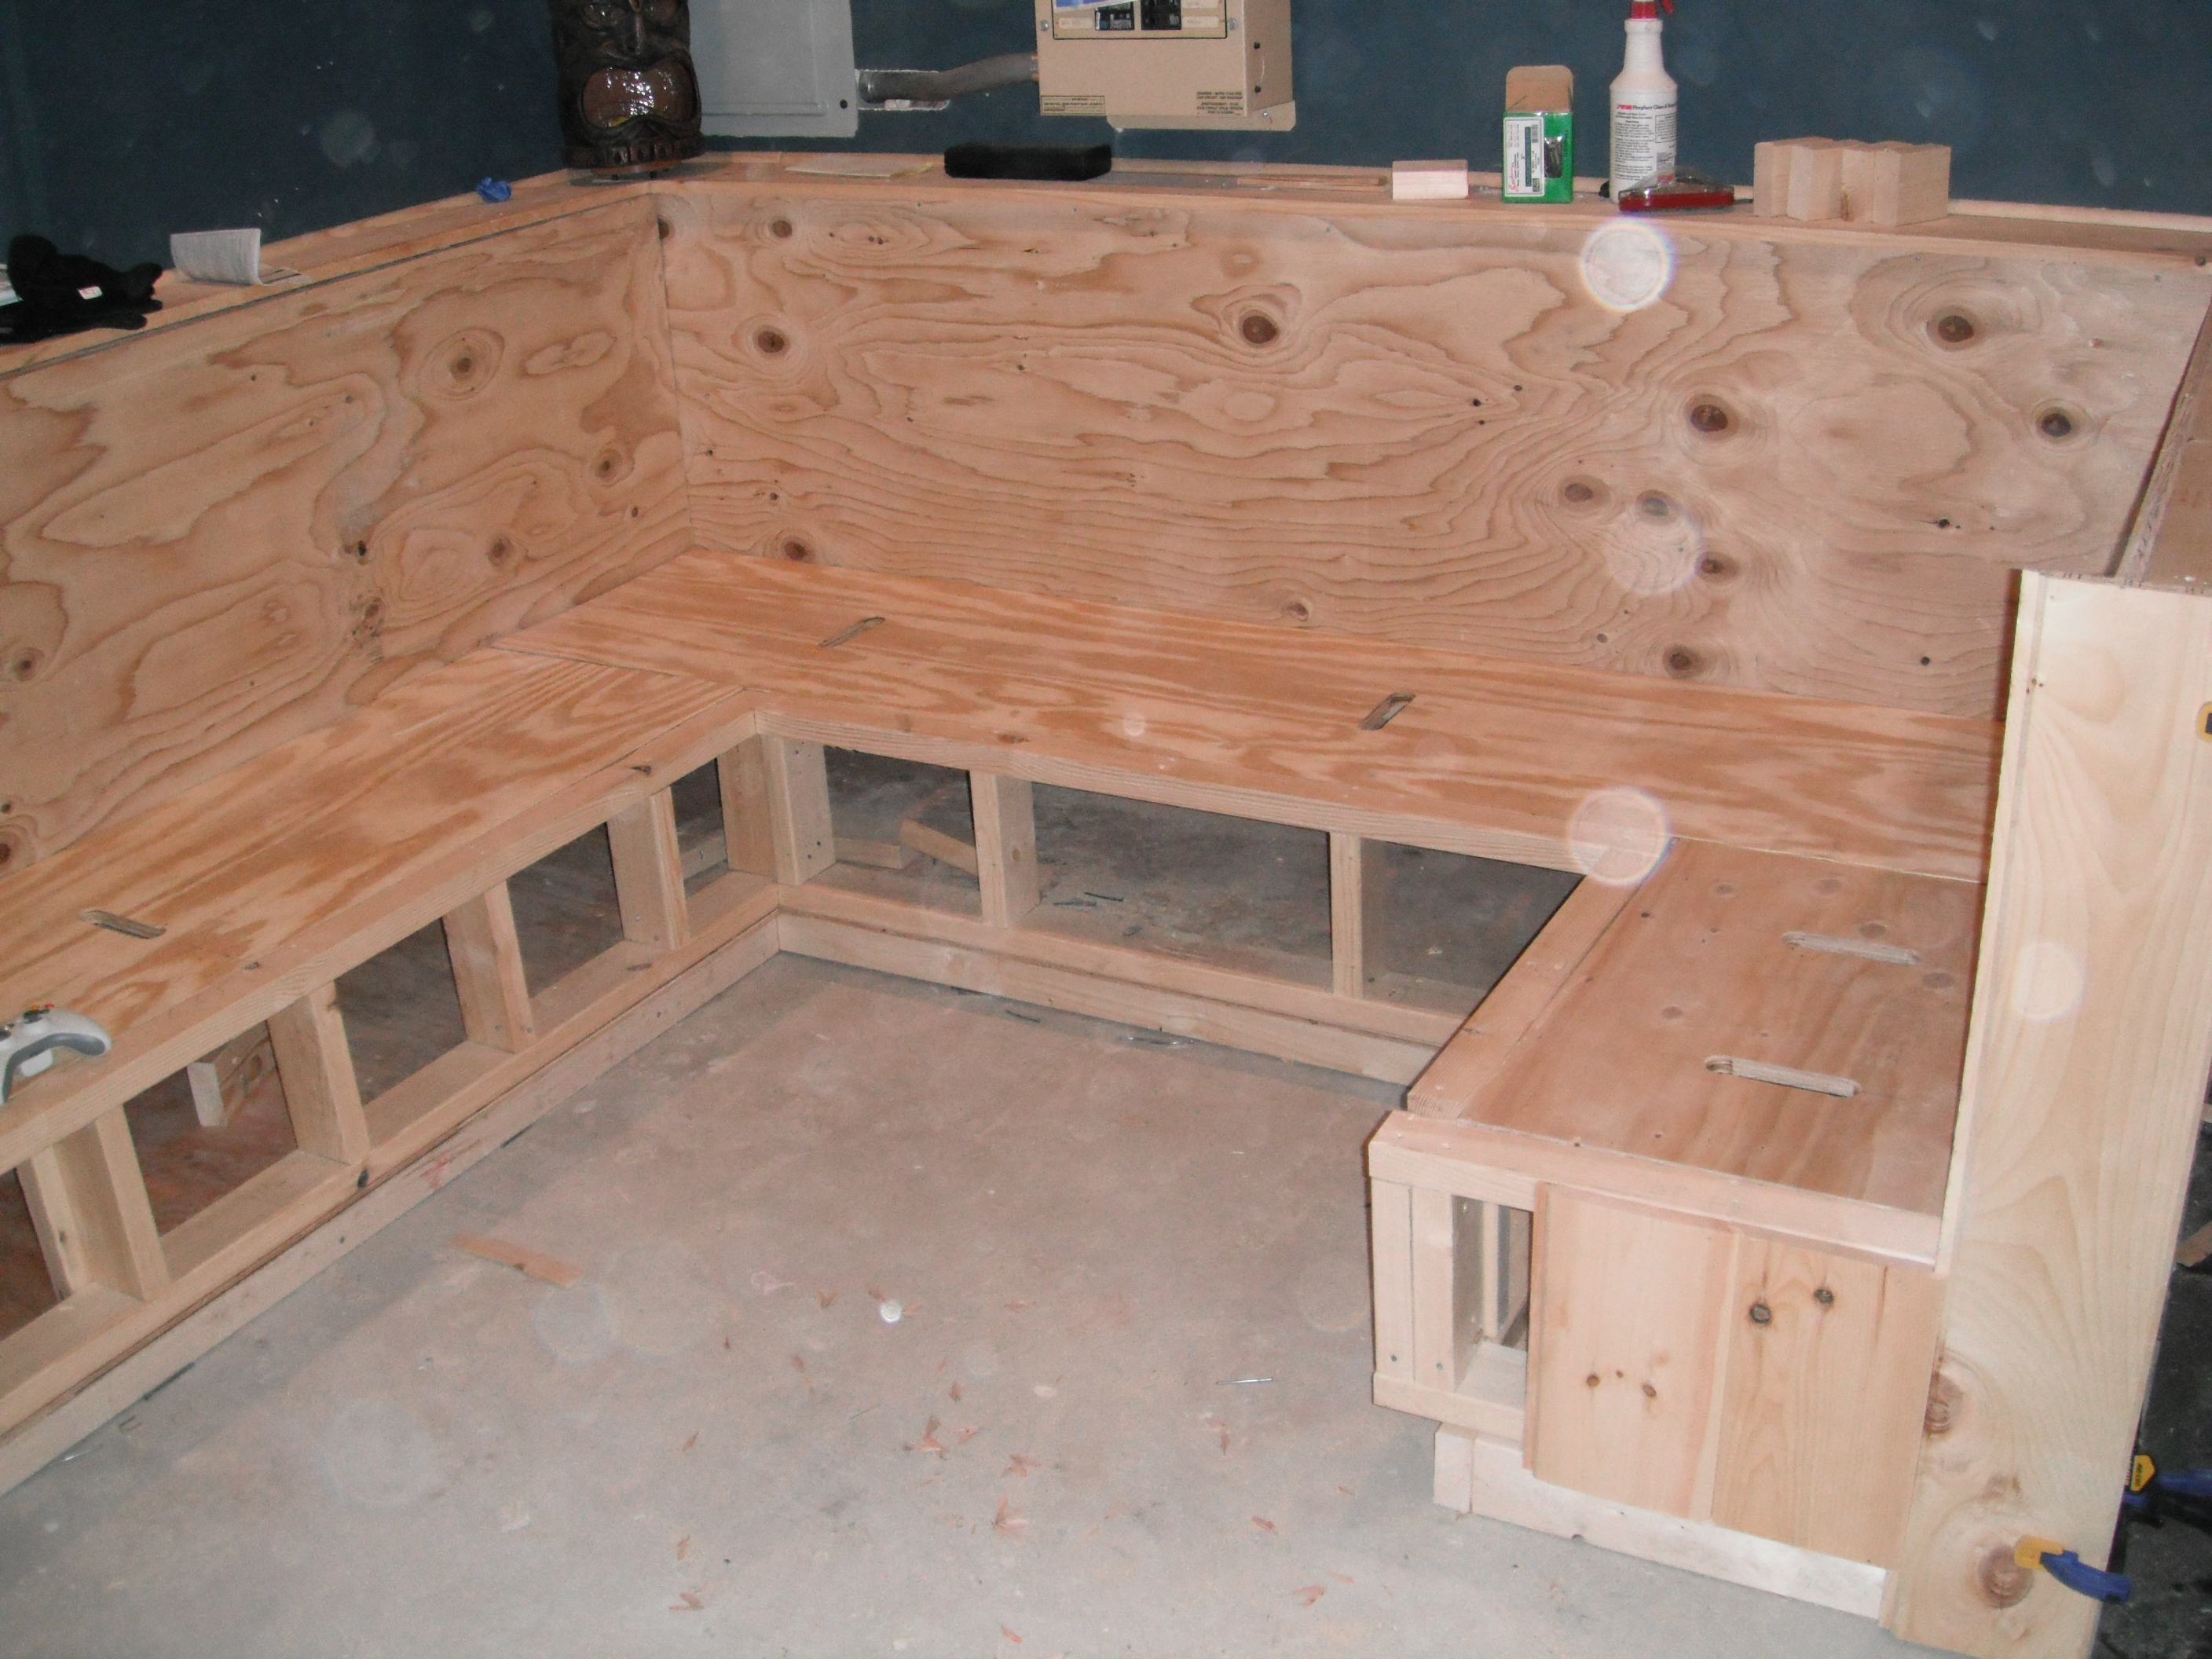 Bar Build 044: Bench Build Day Three | The O\'Shea Family Weblog